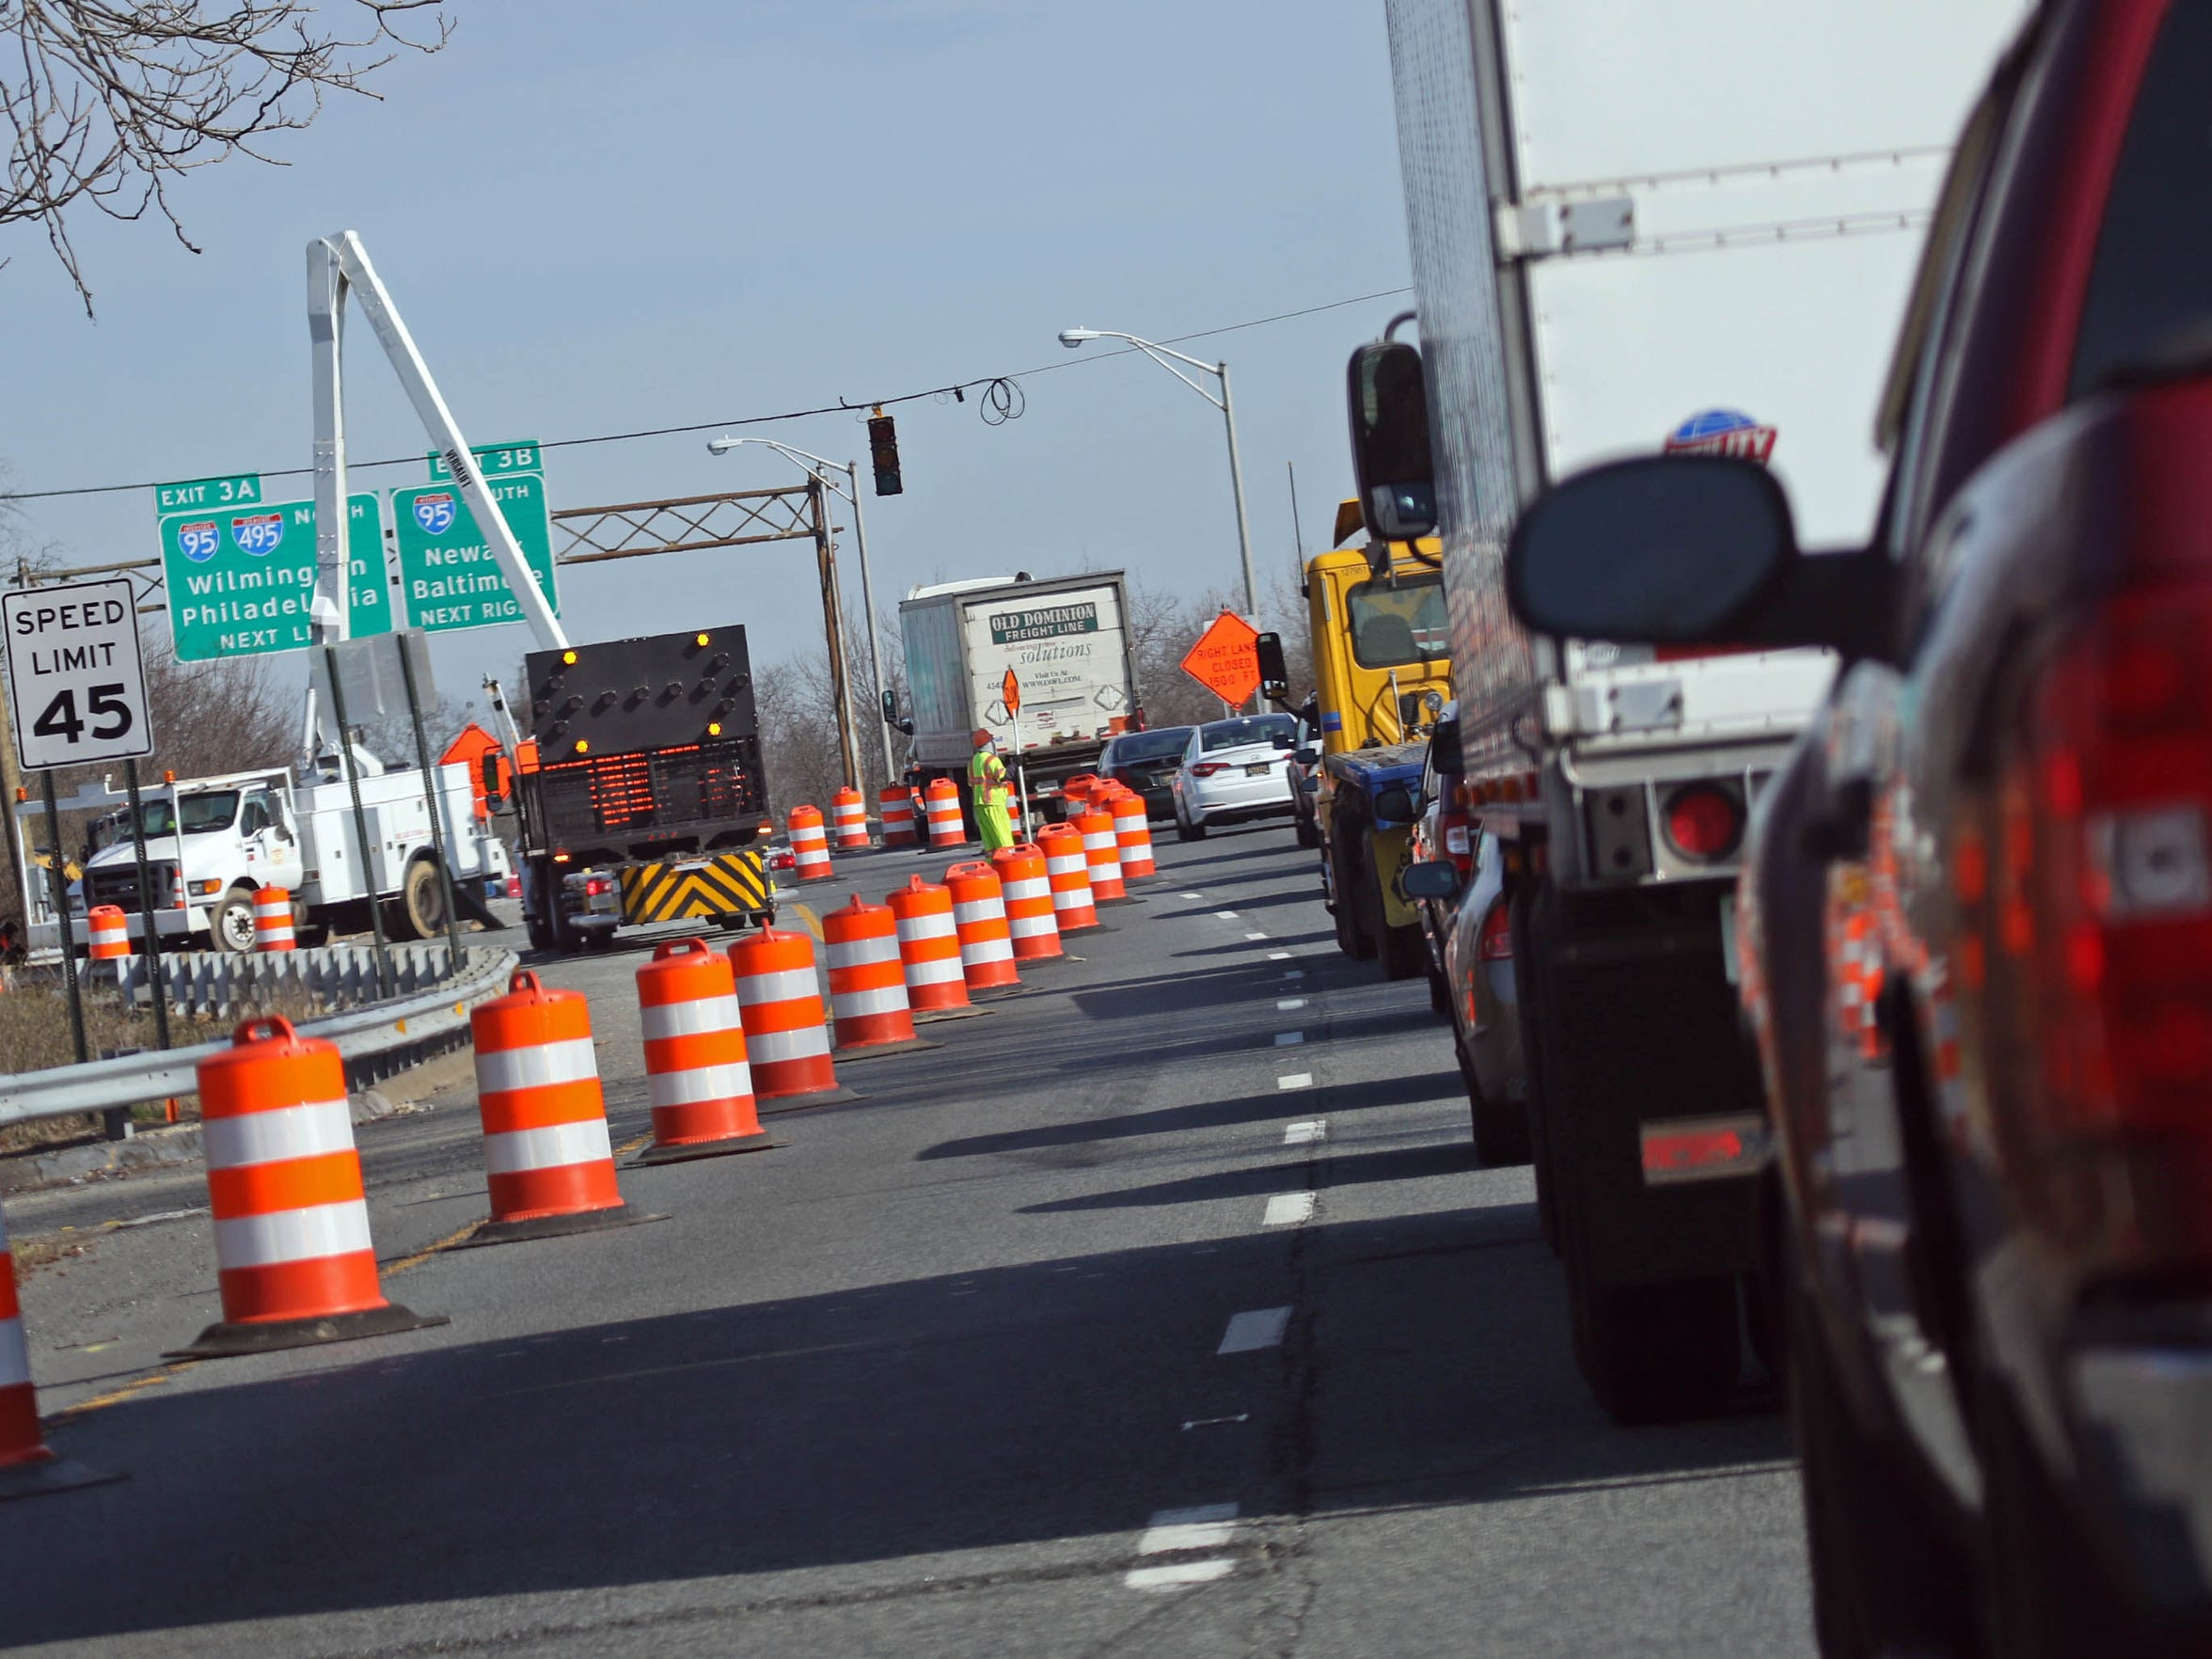 Traffic is delayed on Del. 141 northbound during daily construction on the I-95 overpass.